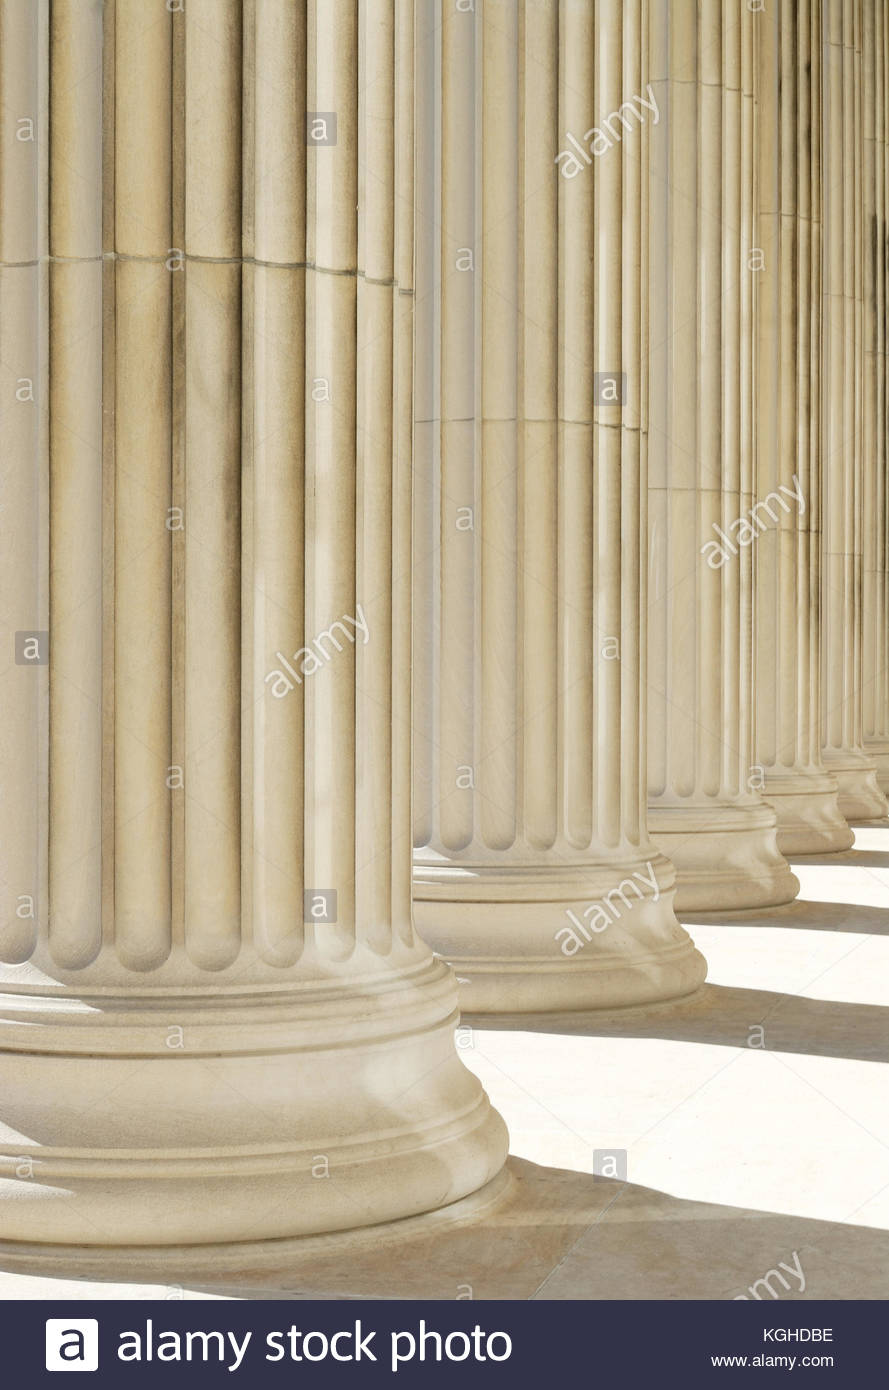 Strong foundation Classic columns background Stock Photo 889x1390